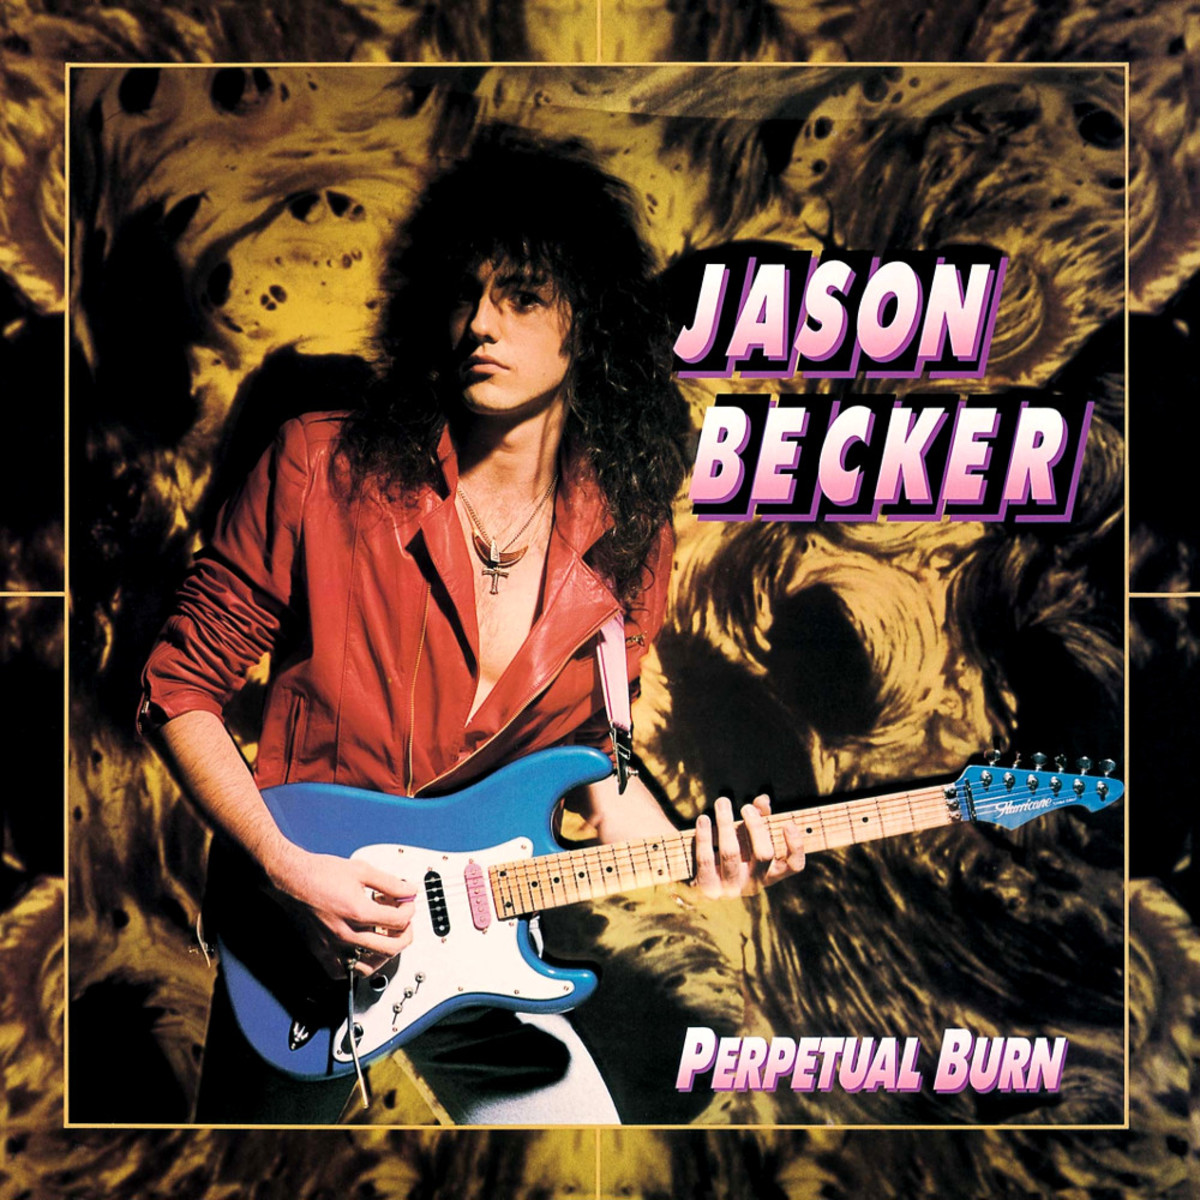 A Review of the album Perpetual Burn the finest work by guitarist Jason Becker